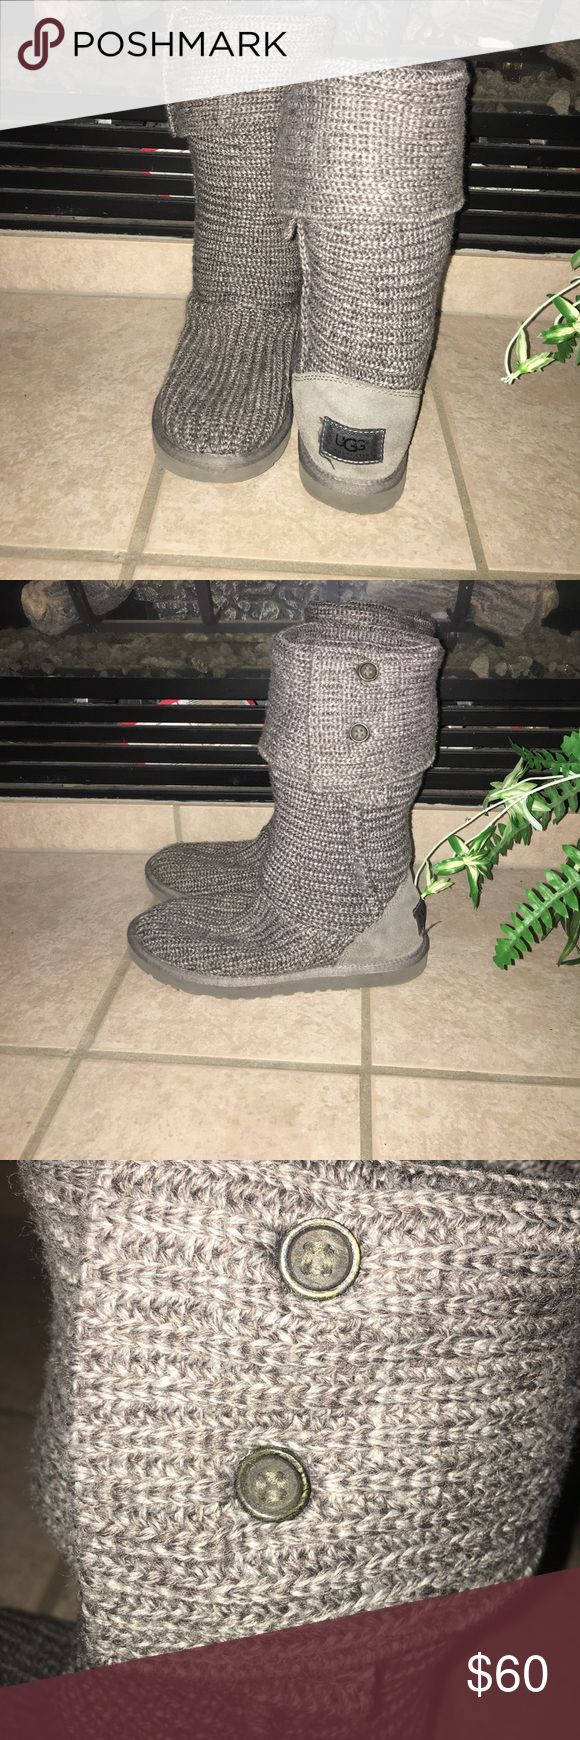 🆕 Listing Knitted Ugg boots Gently used uggs with alot of life. You can wear them rolled up or down. No stains, snags or tears. UGG Shoes